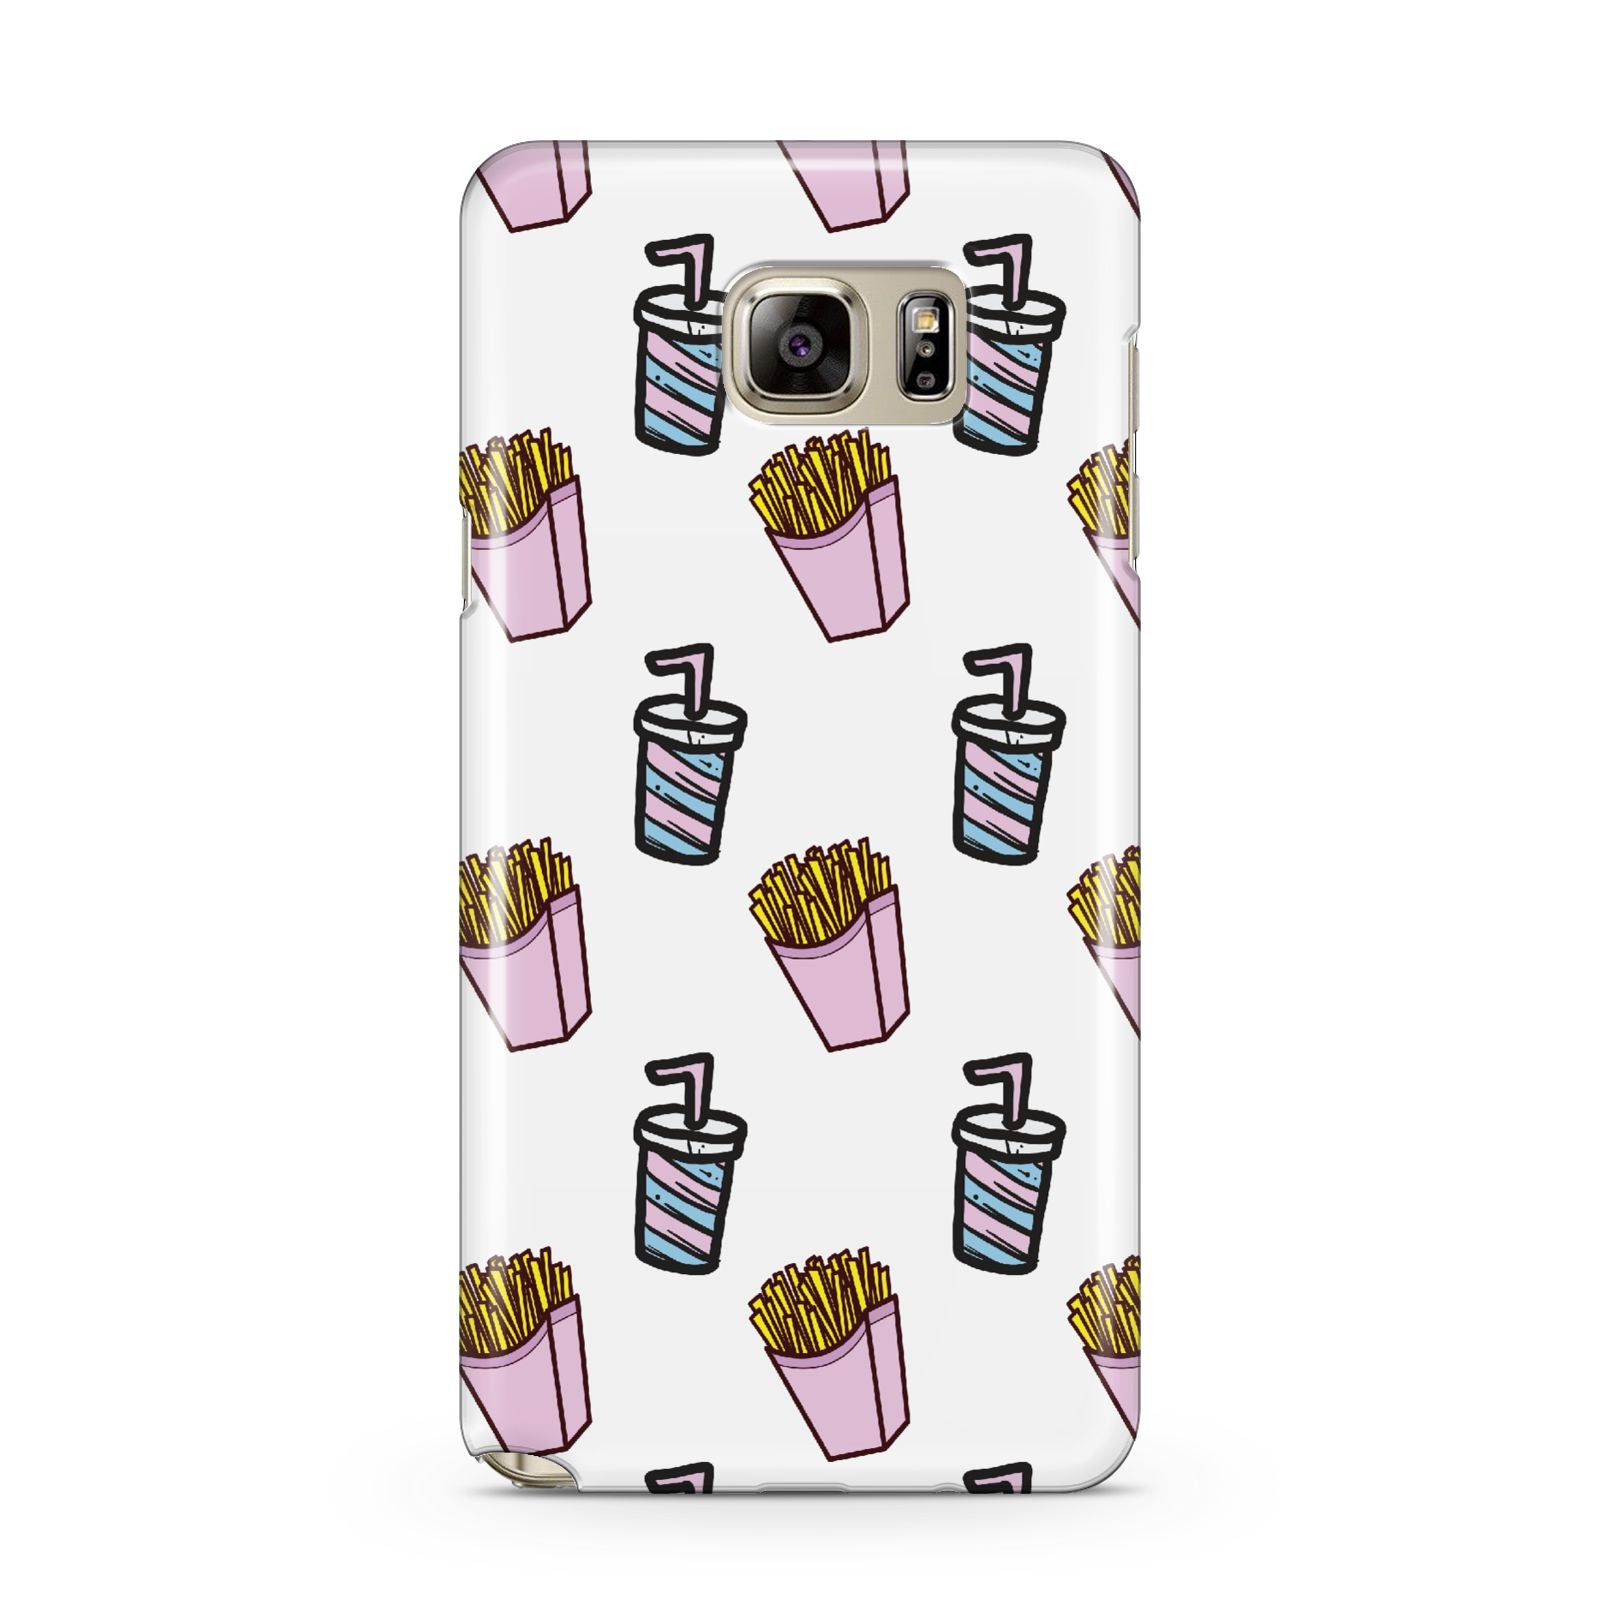 Fries Shake Fast Food Samsung Galaxy Note 5 Case